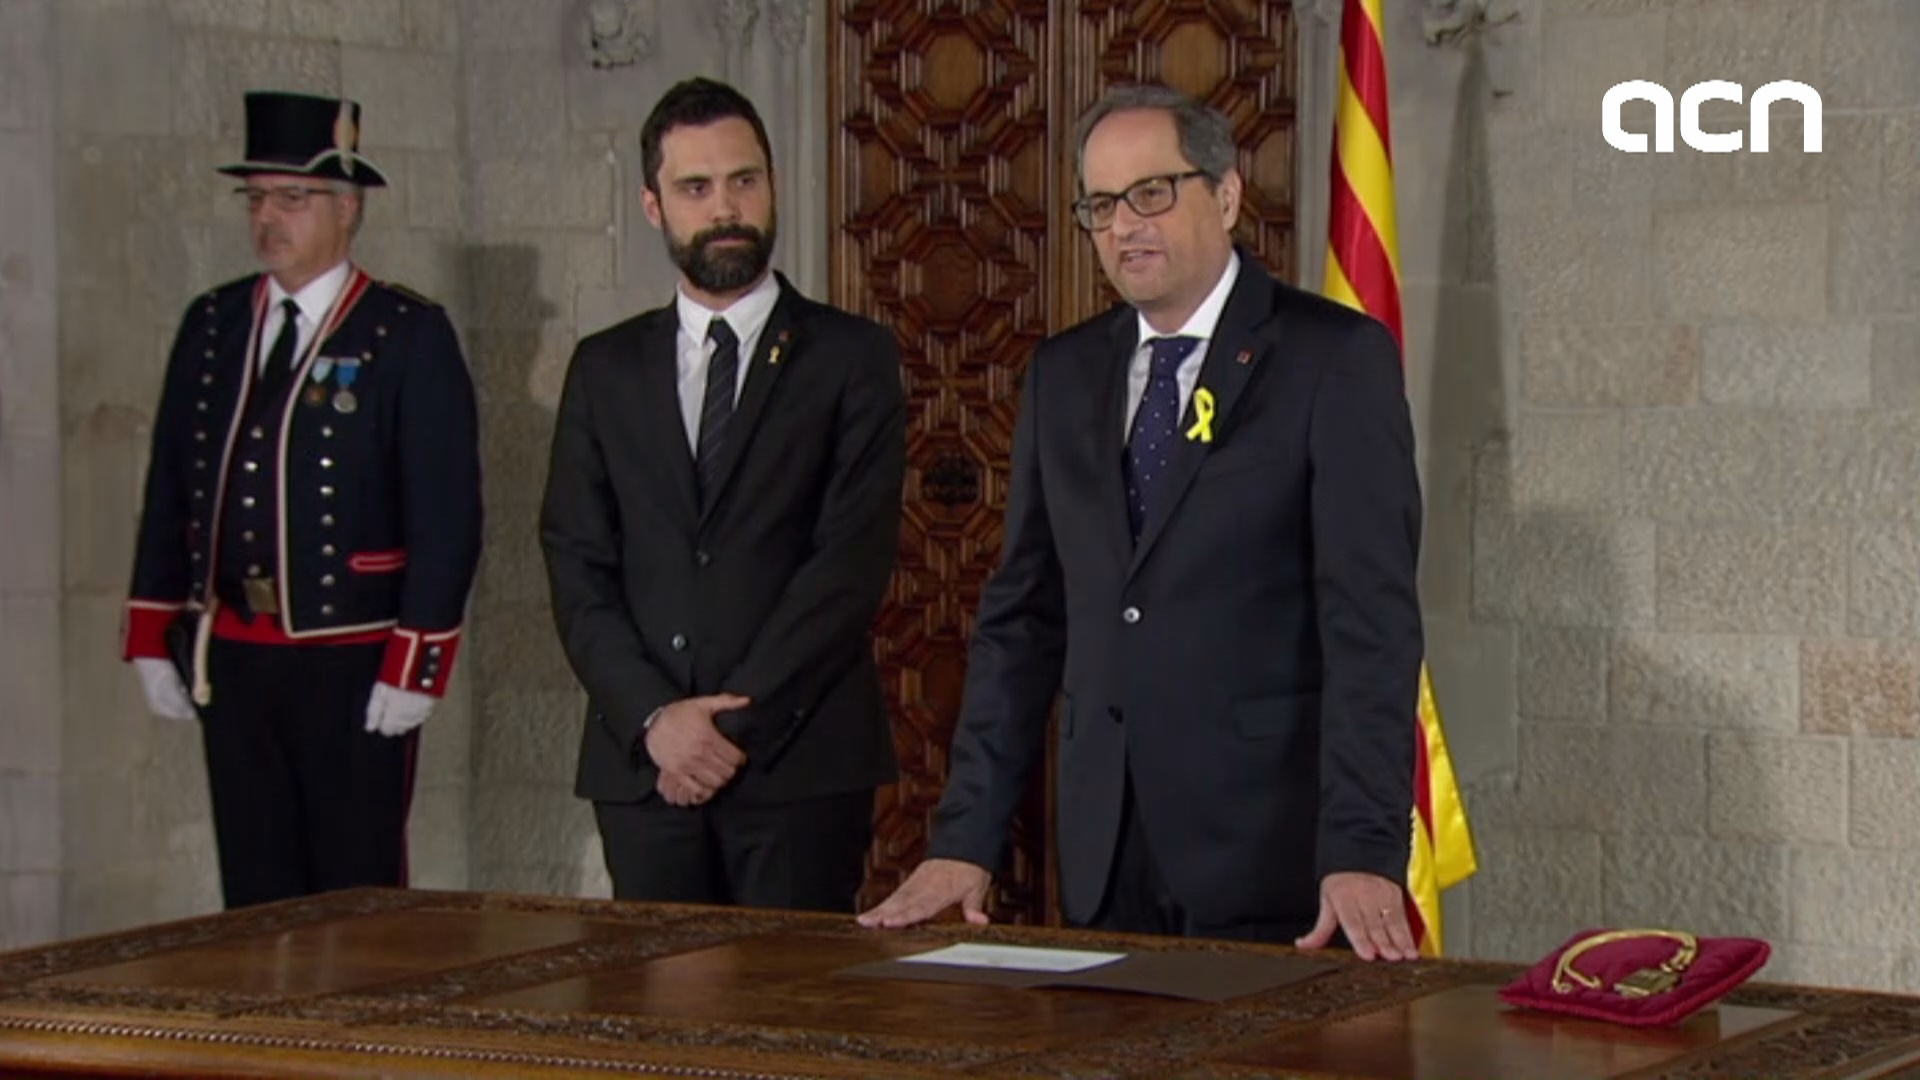 Quim Torra takes oath as Catalan president in government HQ